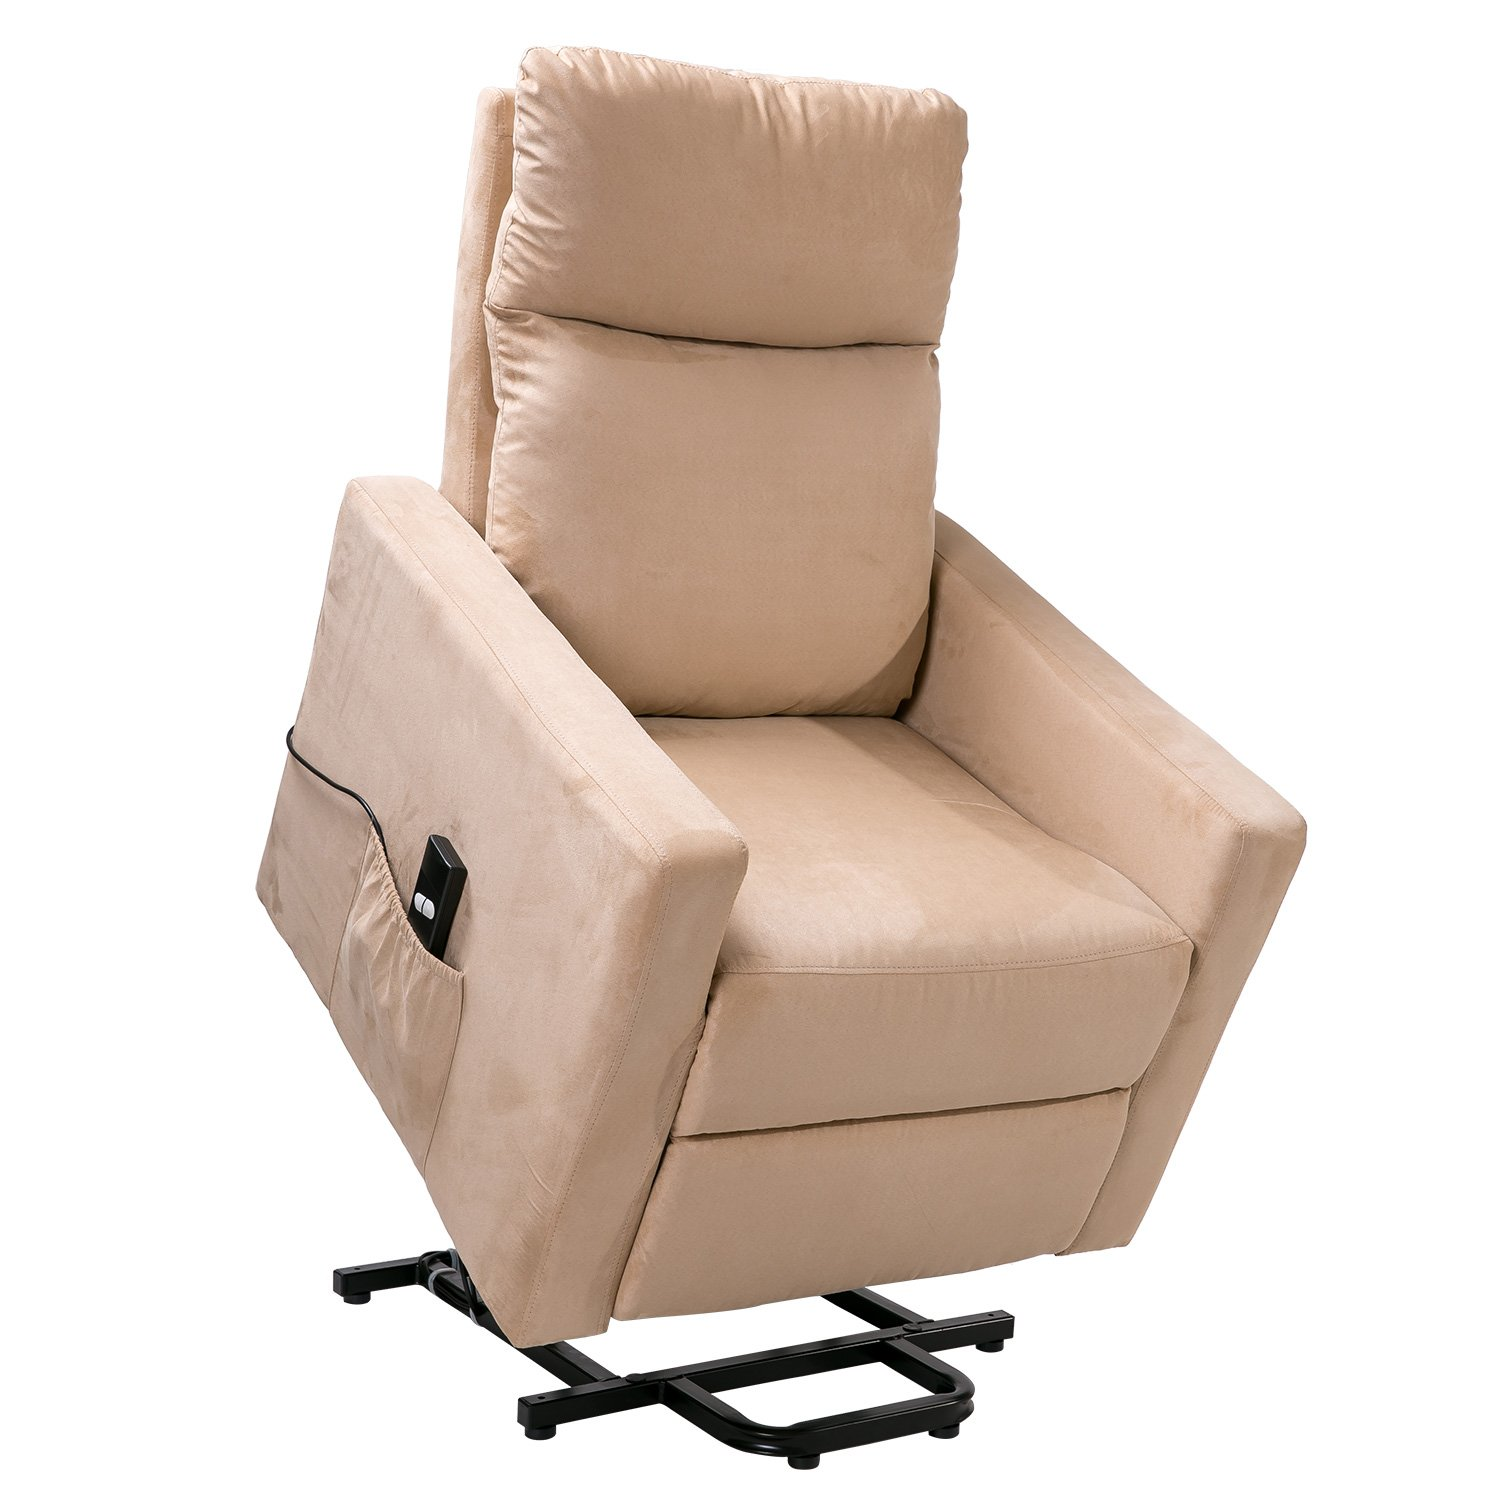 Merax Power Lift Chair and Power Recliner in Suede Fabric, Living Room Recliner with Heavy Duty Reclining Mechanism